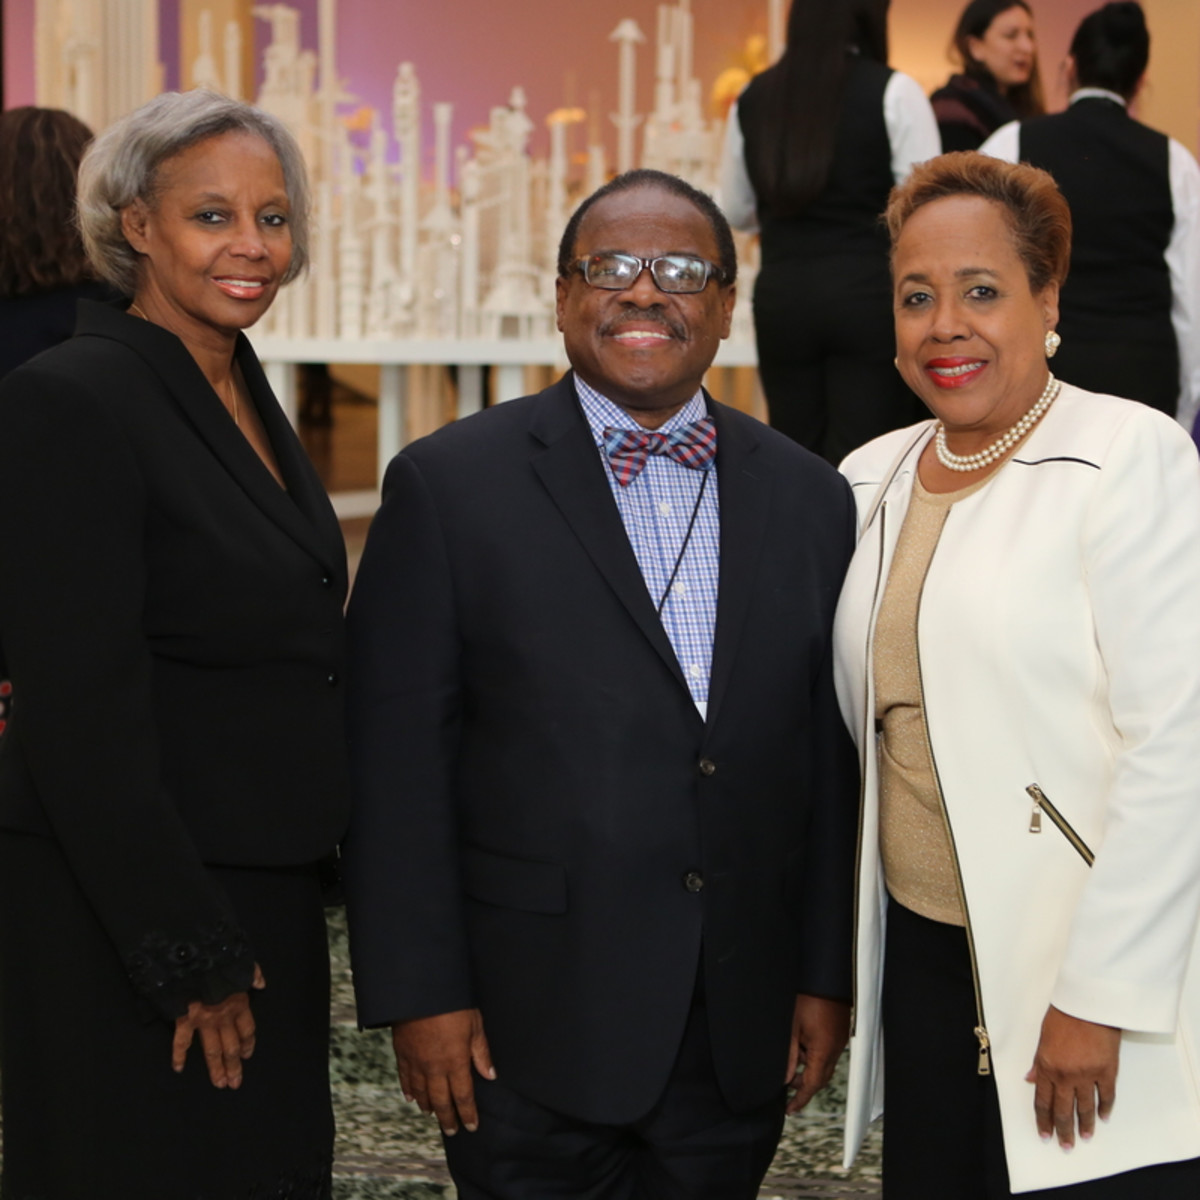 News, Mayor Sylvester Turner Inauguration, Jan. 2016, MFAH, Janice Weaver, Carl Davis, friend.